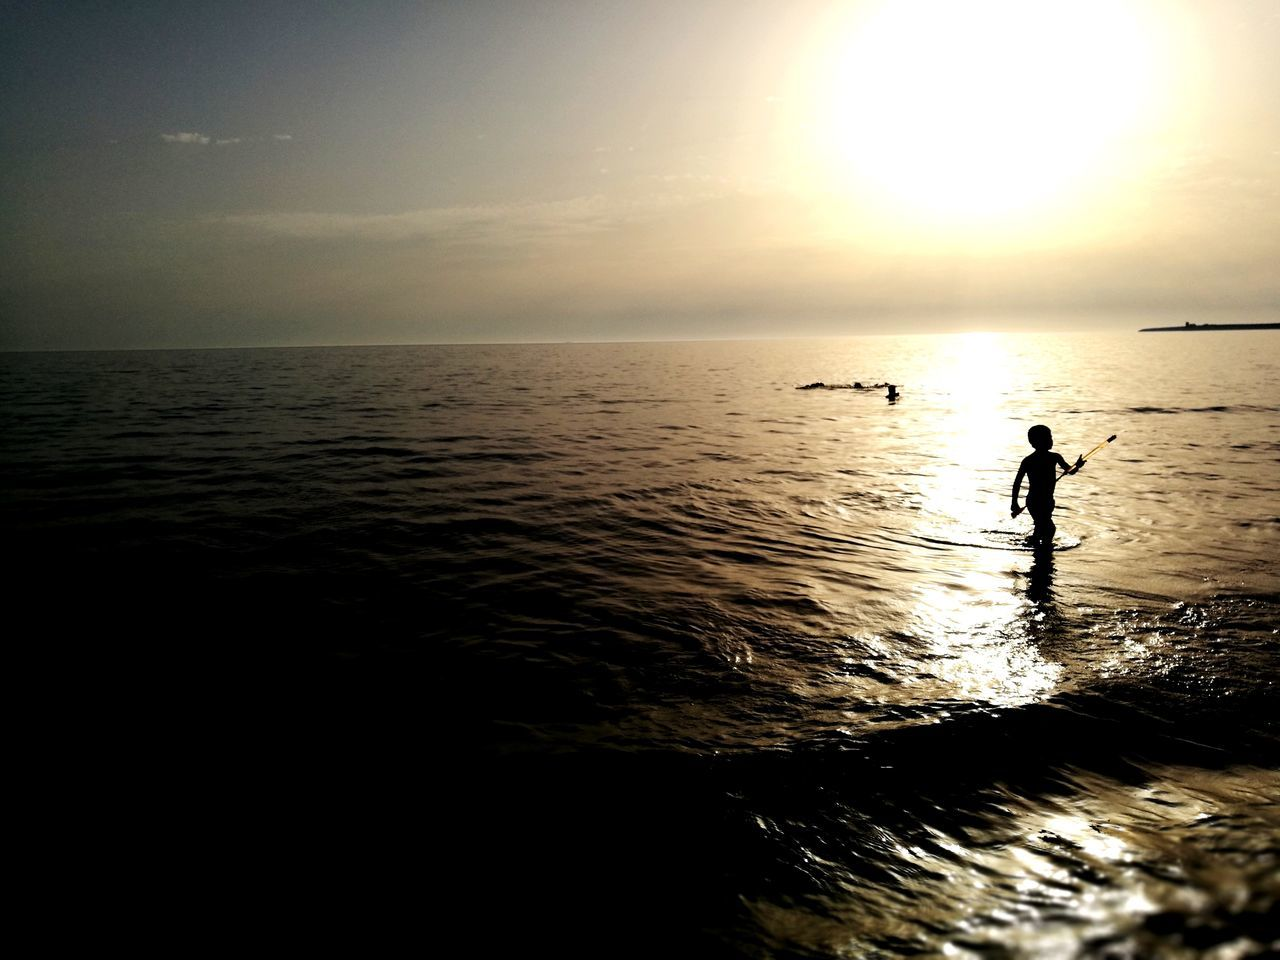 sea, water, silhouette, horizon over water, sunset, scenics, nature, beauty in nature, tranquil scene, tranquility, waterfront, one person, sky, full length, rippled, beach, outdoors, standing, sunlight, real people, vacations, paddleboarding, day, people